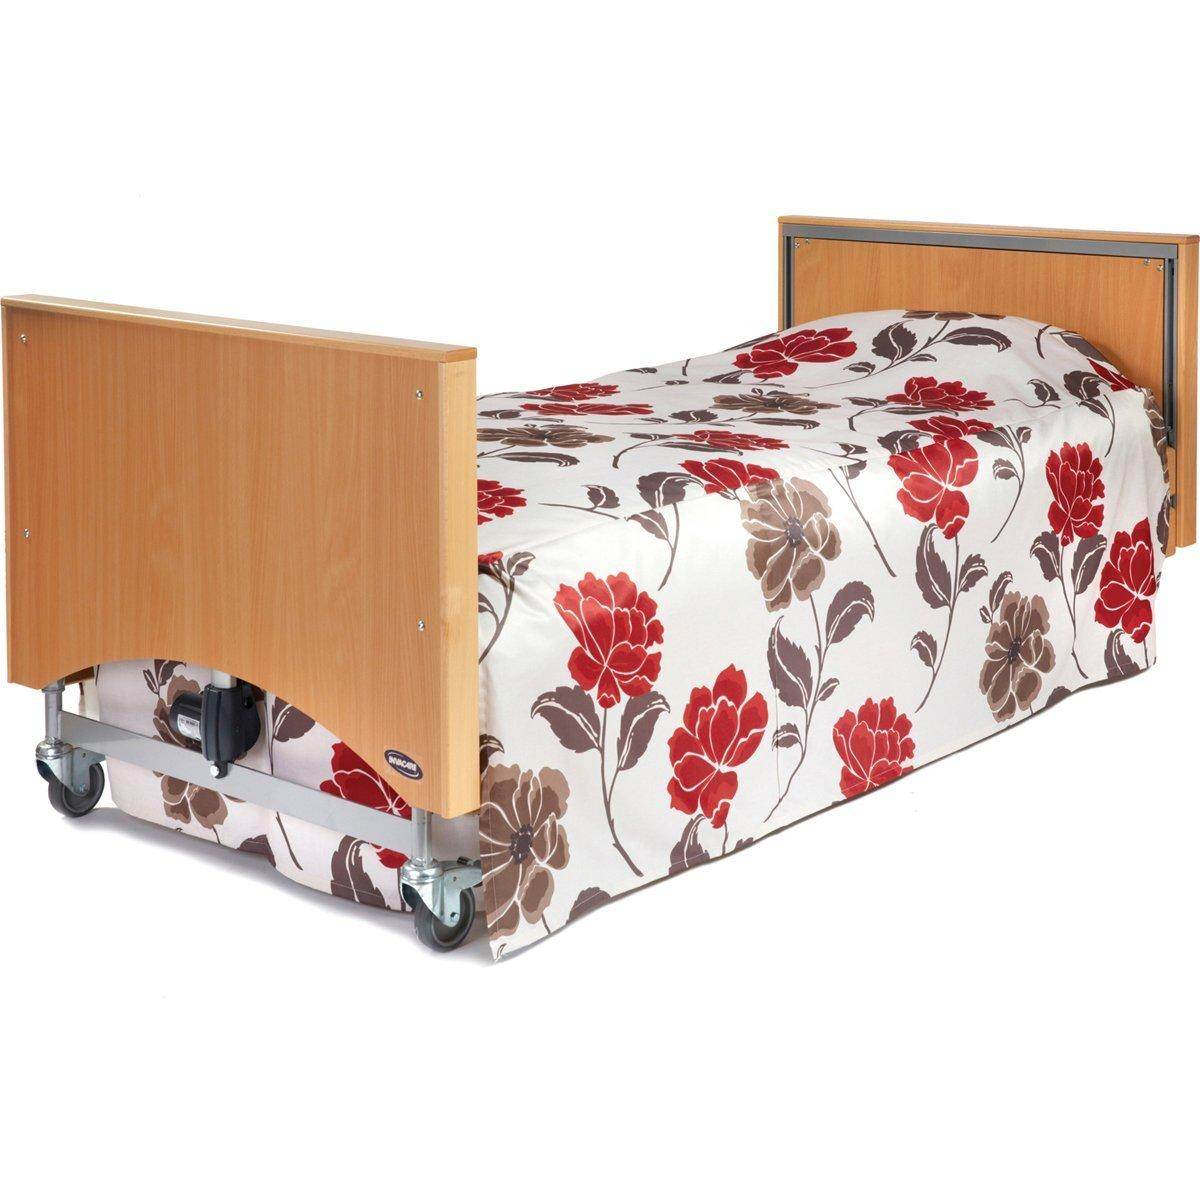 Box Fitted Bedspread Split Corners 220g Printed Fabric